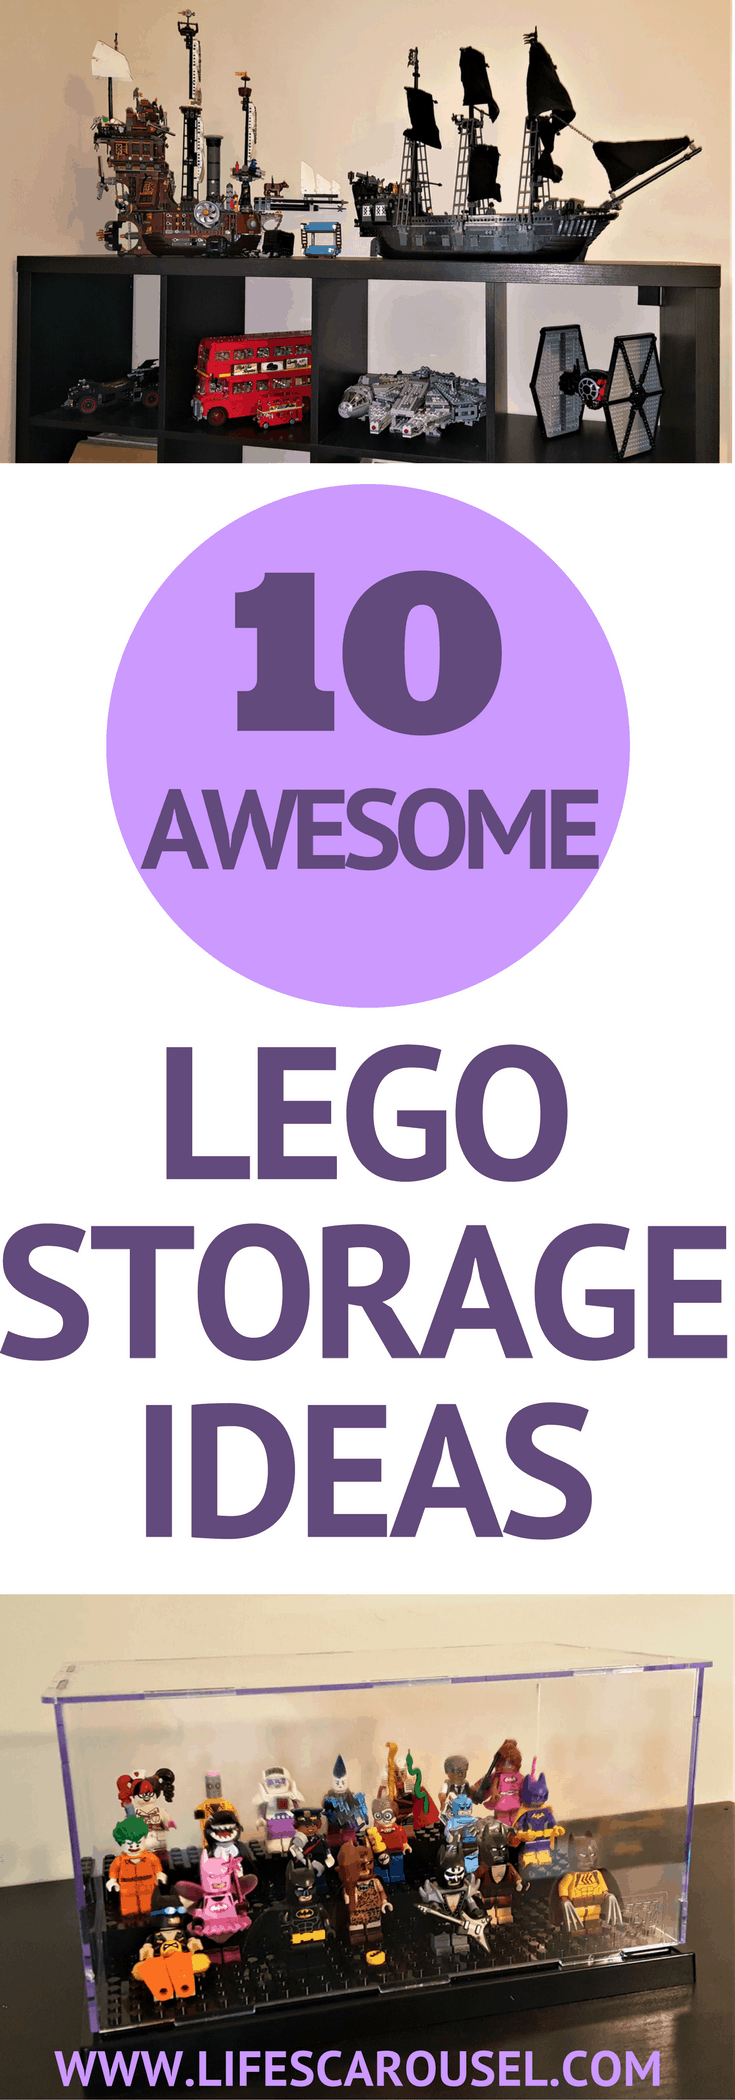 Lego Storage Ideas | 10 Awesome ideas for storage your Lego pieces, sets and minifigures. DIY Lego organization ideas - tables, displays and more.